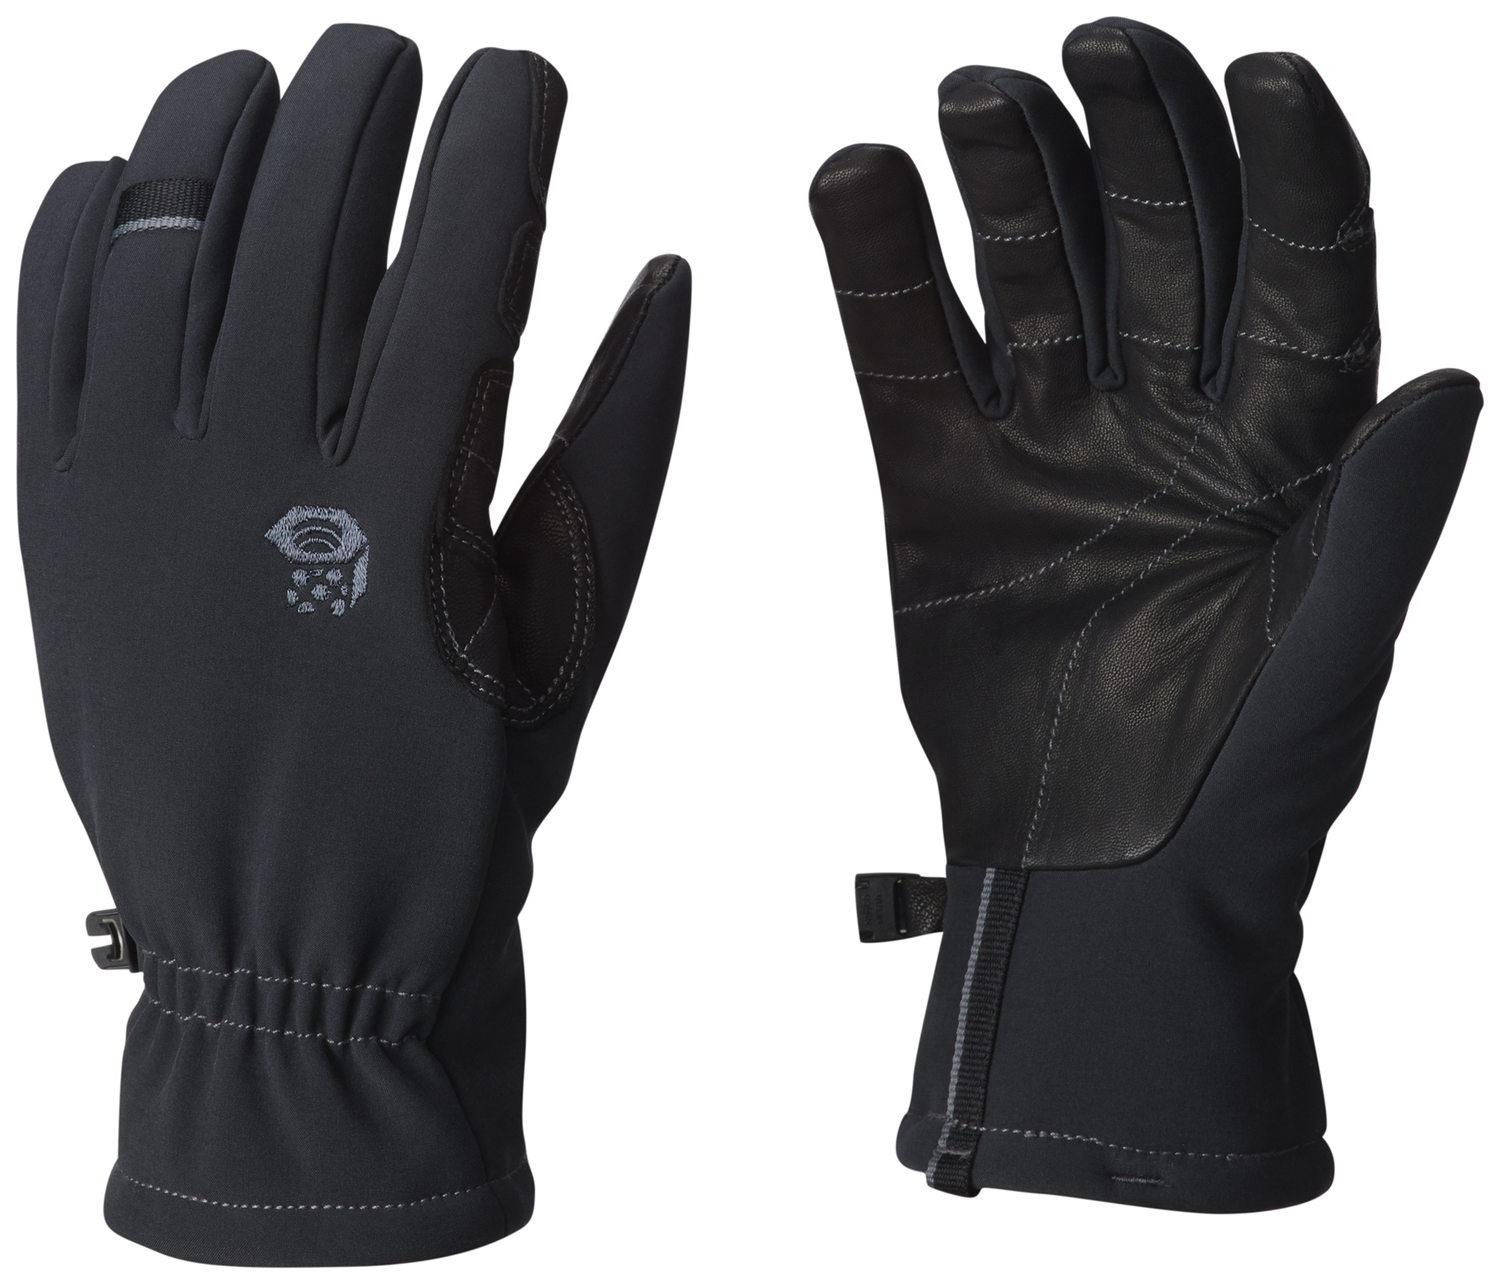 MOUNTAIN HARDWEAR WOMENS TORSION INSULATED GLOVE Clothing, Shoes & Accessories